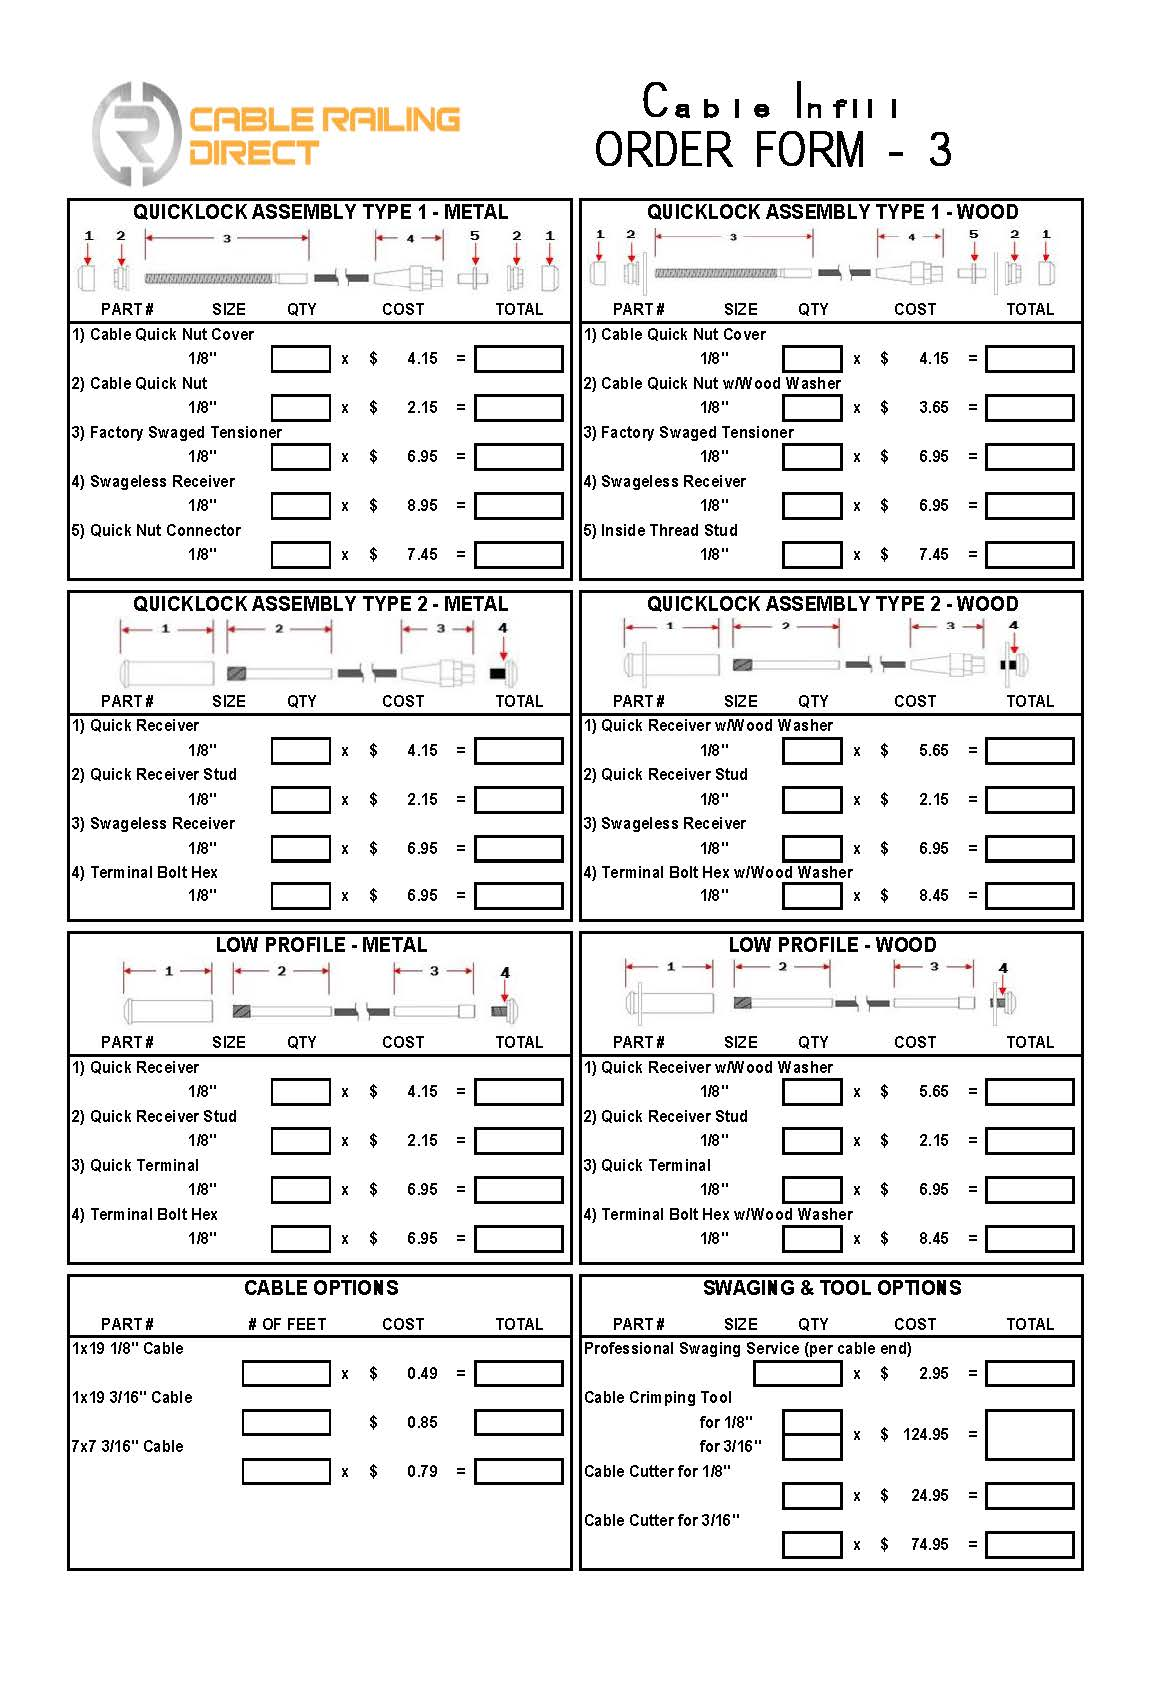 CRD Infill Order Forms Page 3